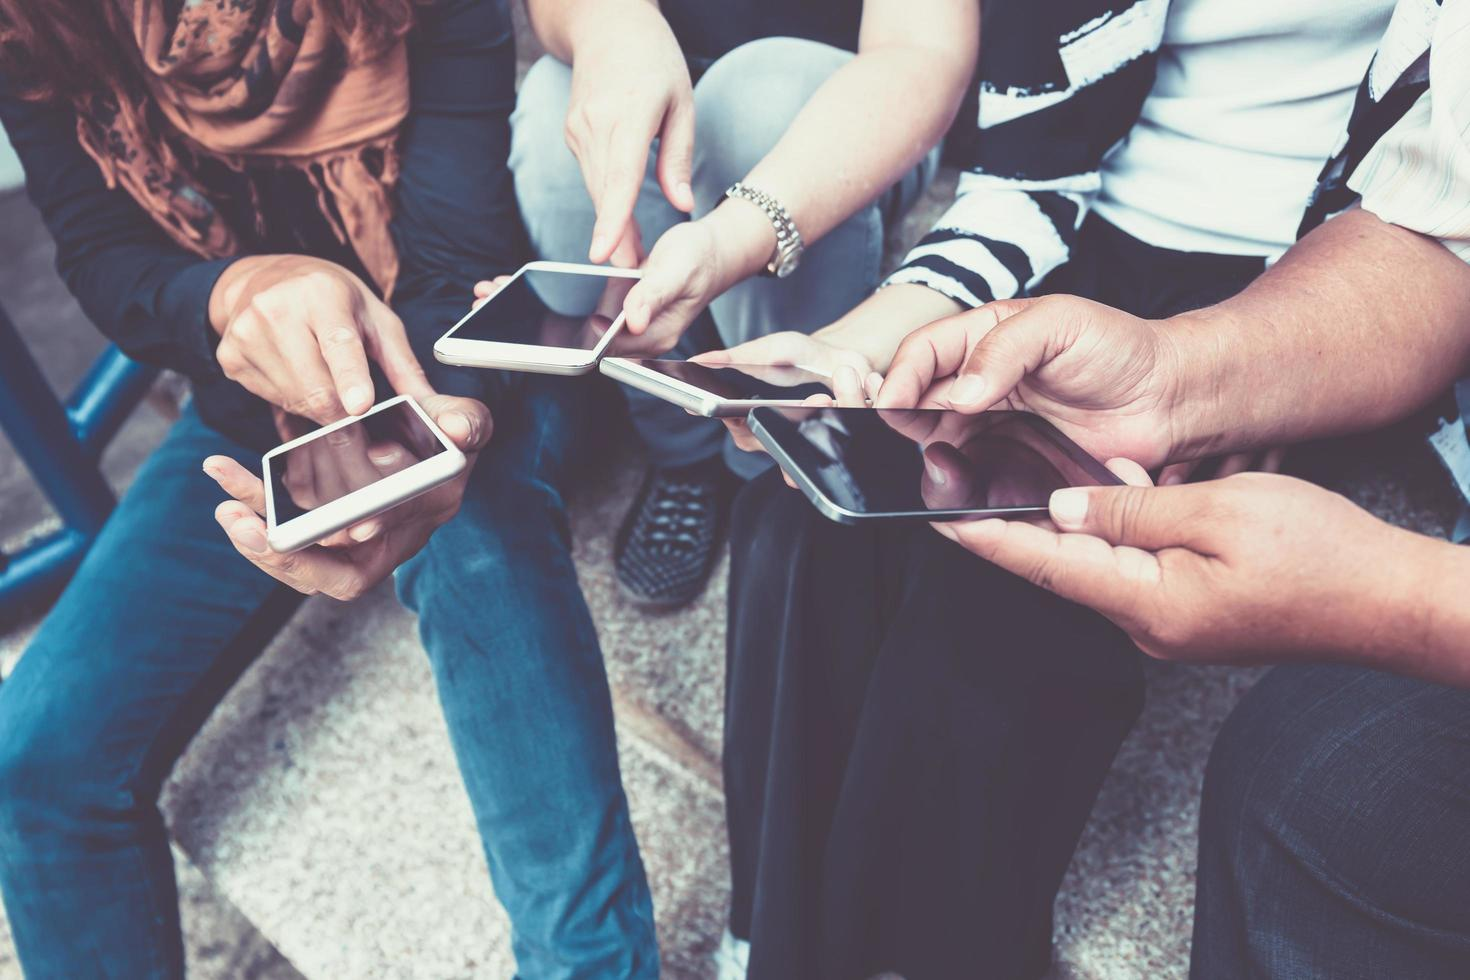 Group of people using smart phones photo